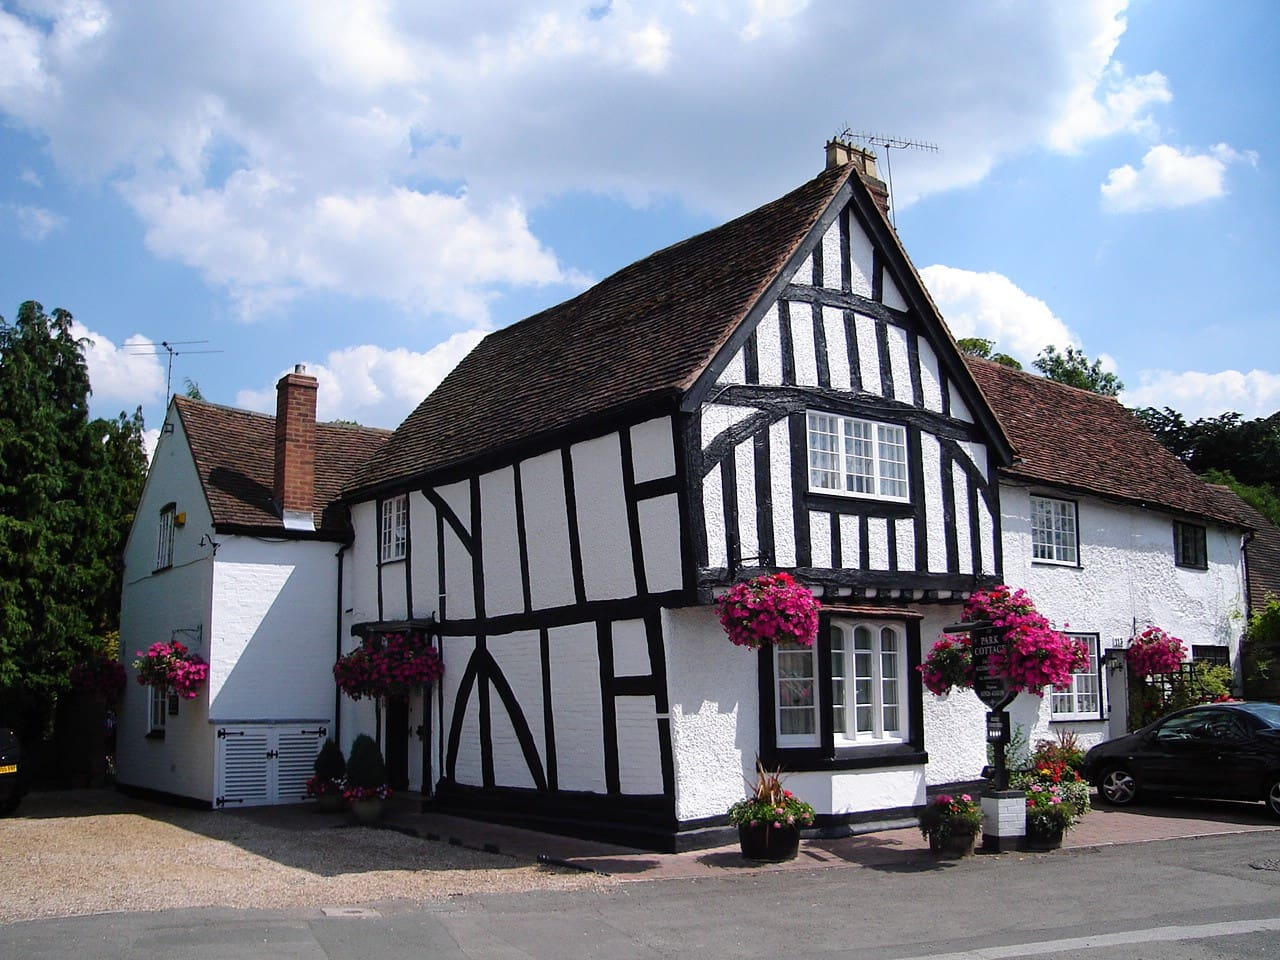 500 year old cottage located in Warwick